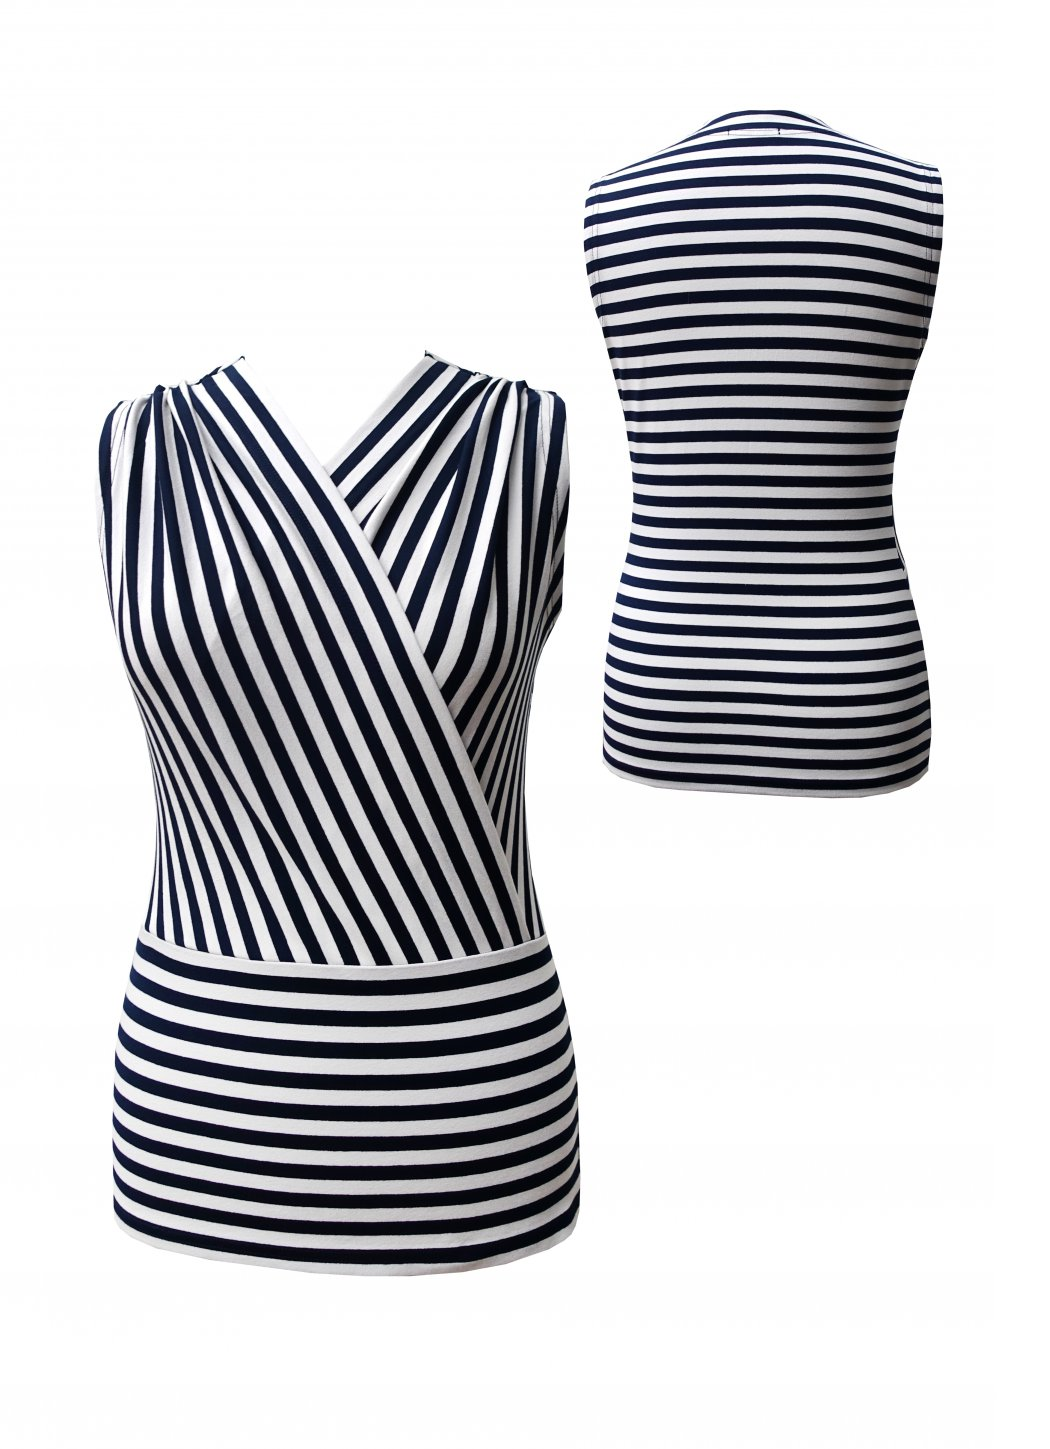 Striped ladies tops Ontarionette Female dress